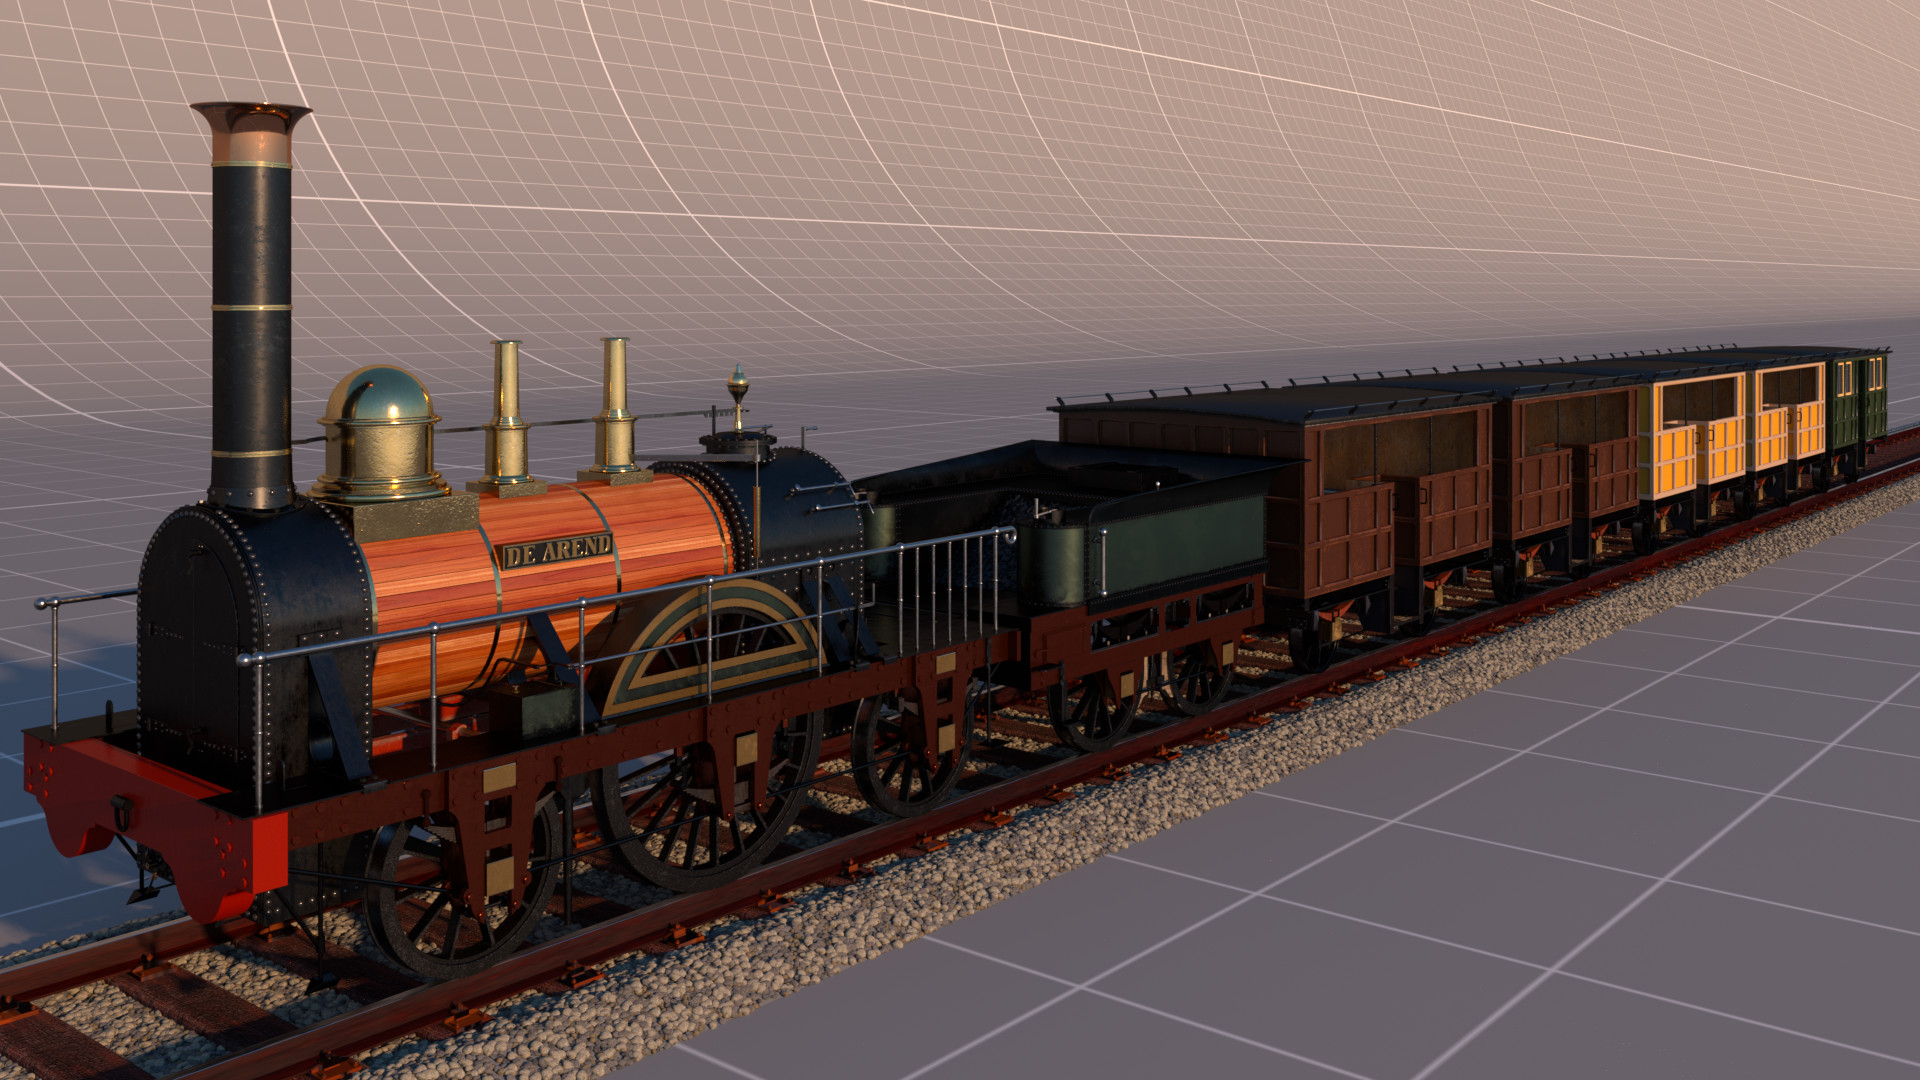 Full render of the train.